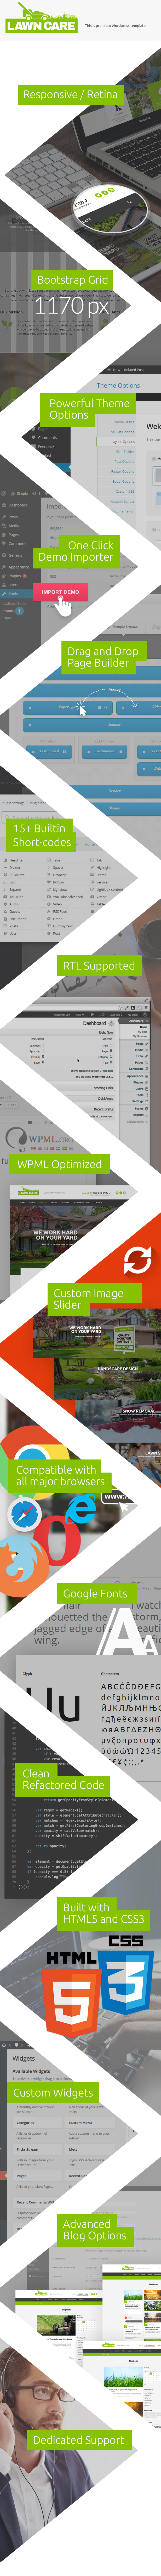 Presentation for Lawn Care WordPress Template